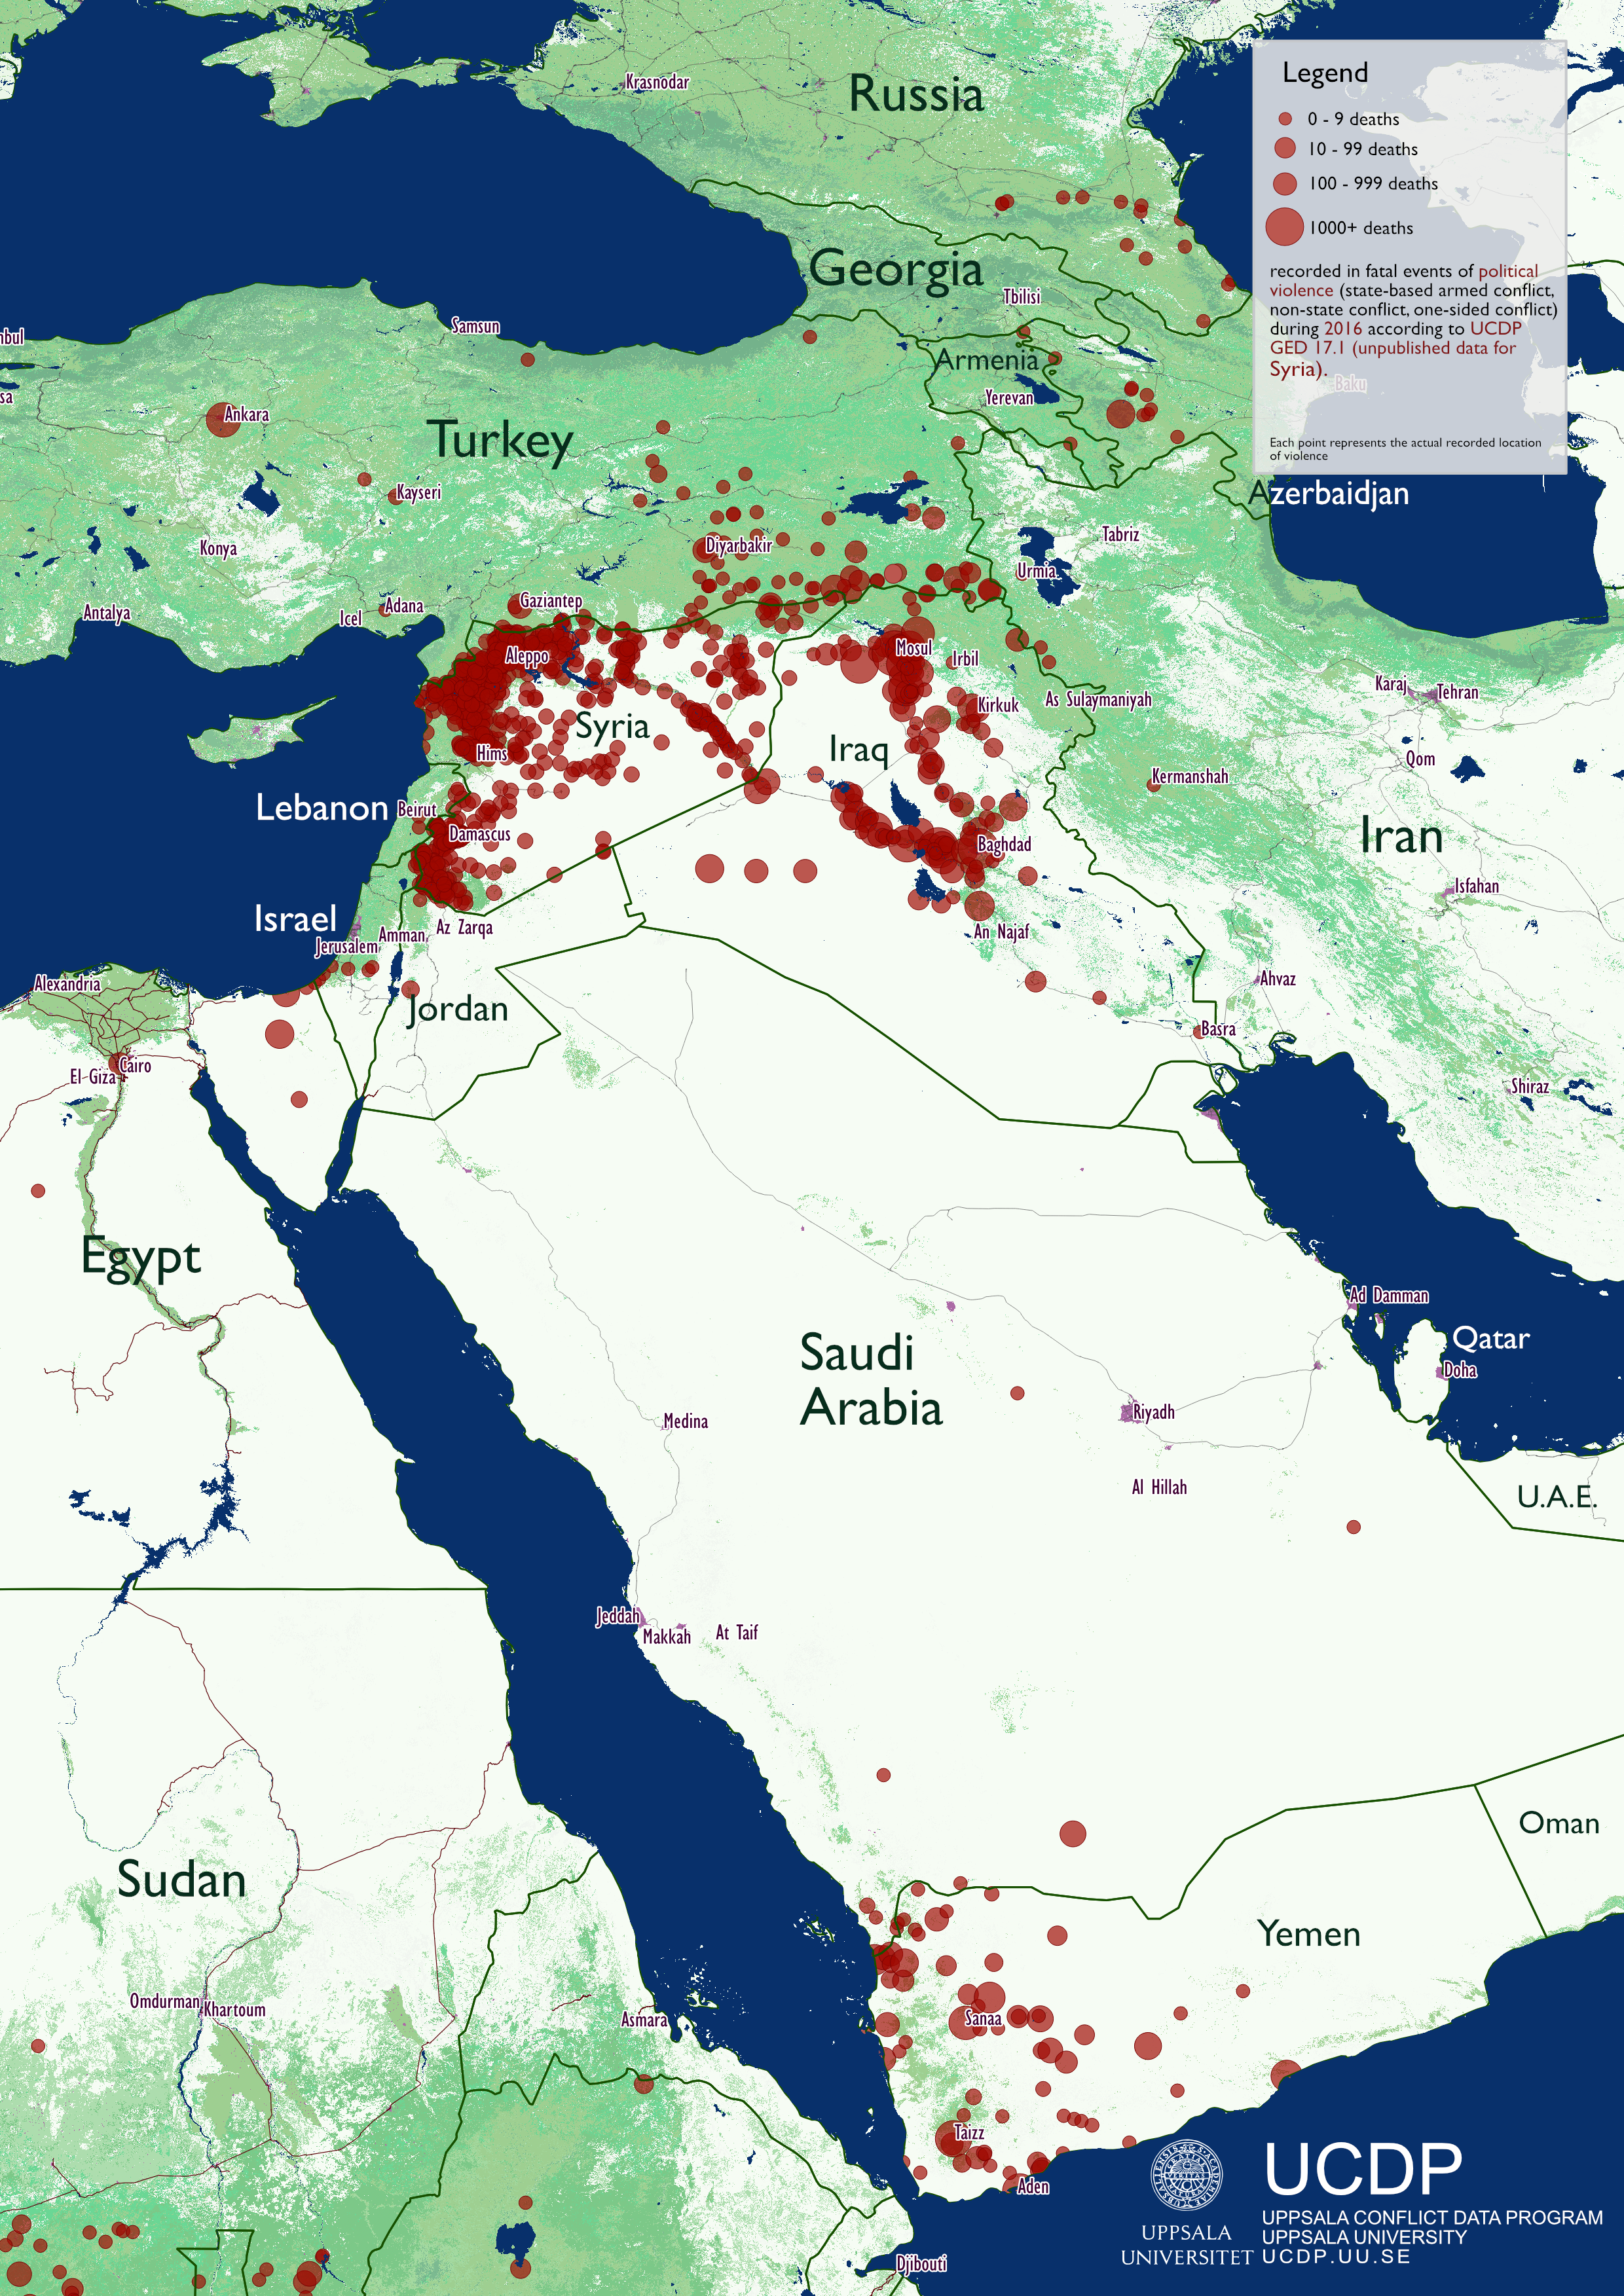 map of the worlds conflicts in 2016 ucdp ged map middle east 2016